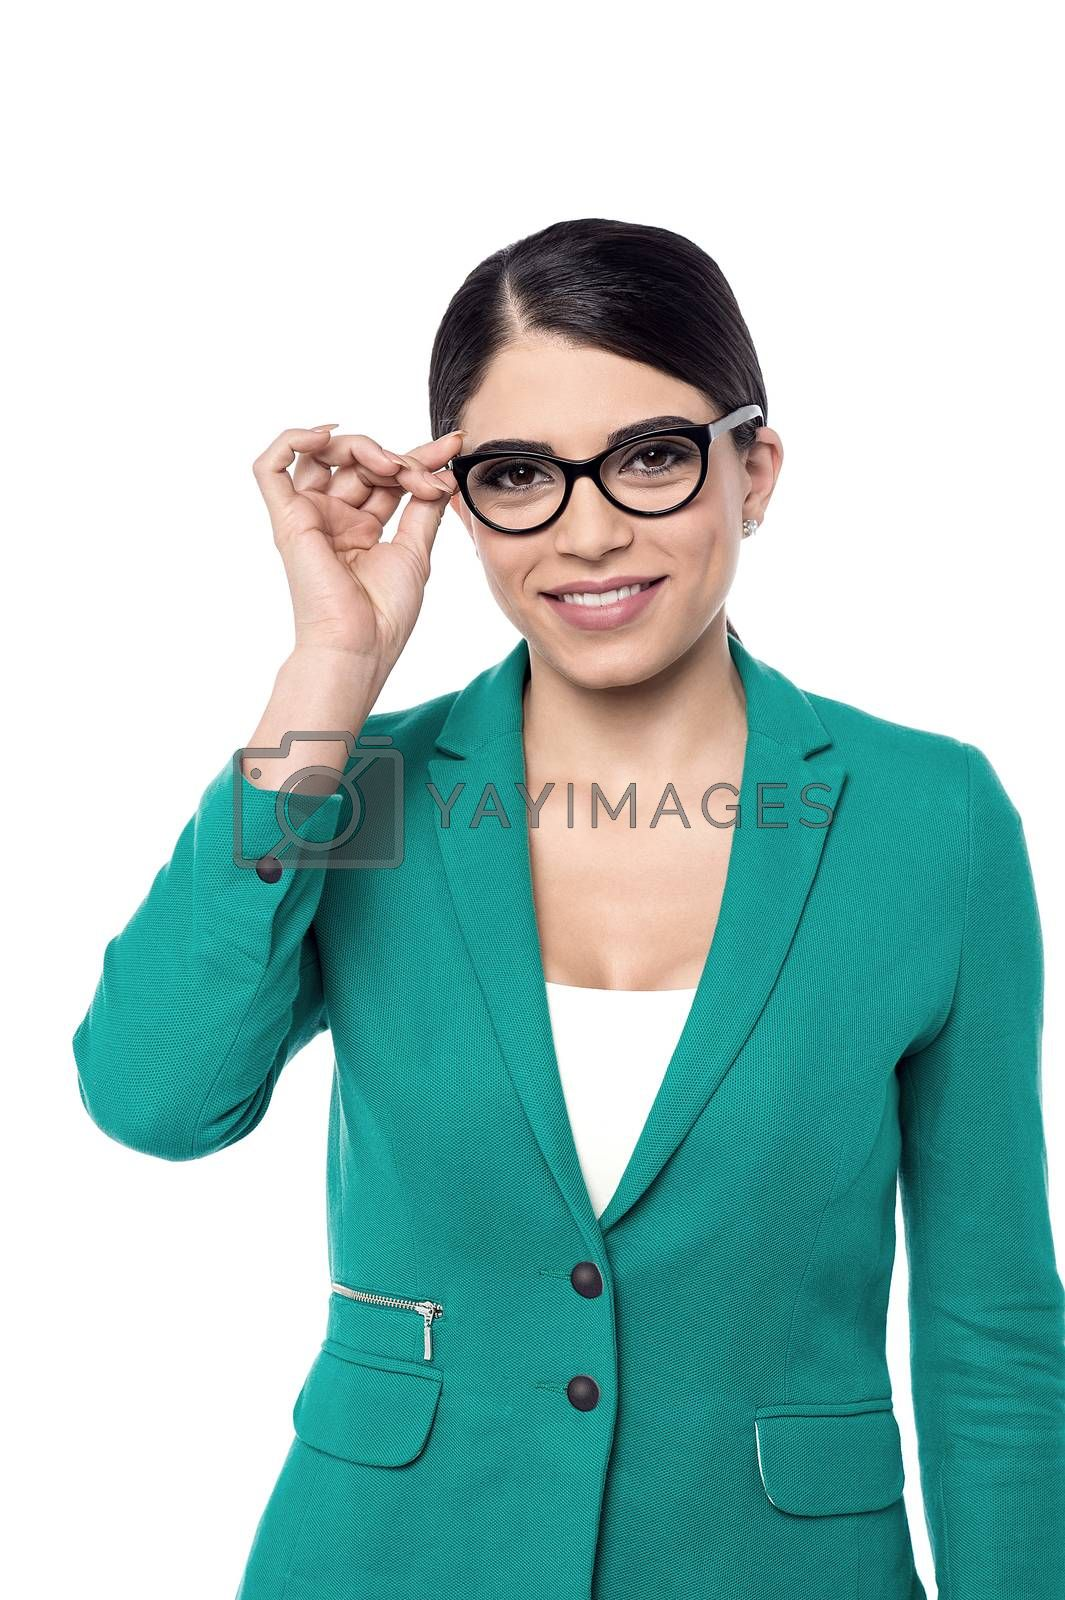 Image of a business woman adjusting her eye glasses